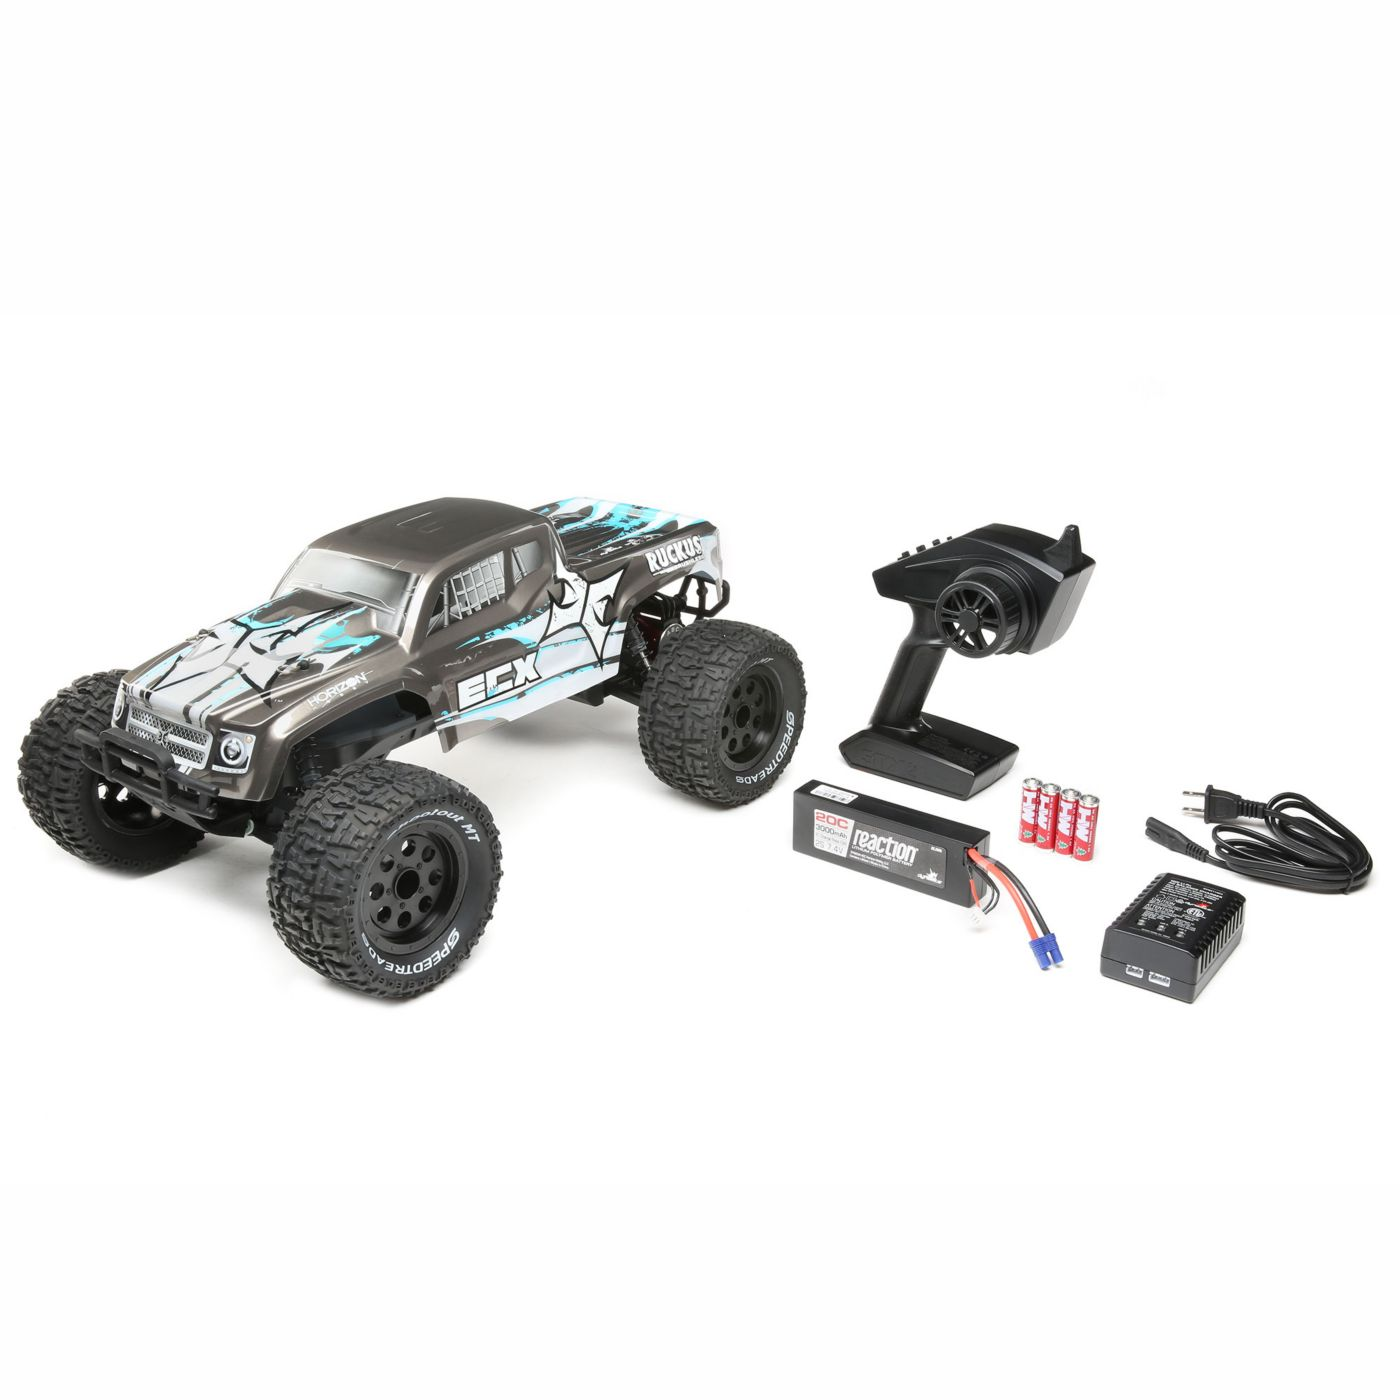 ECX Ruckus RC Monster Truck - RTR Package